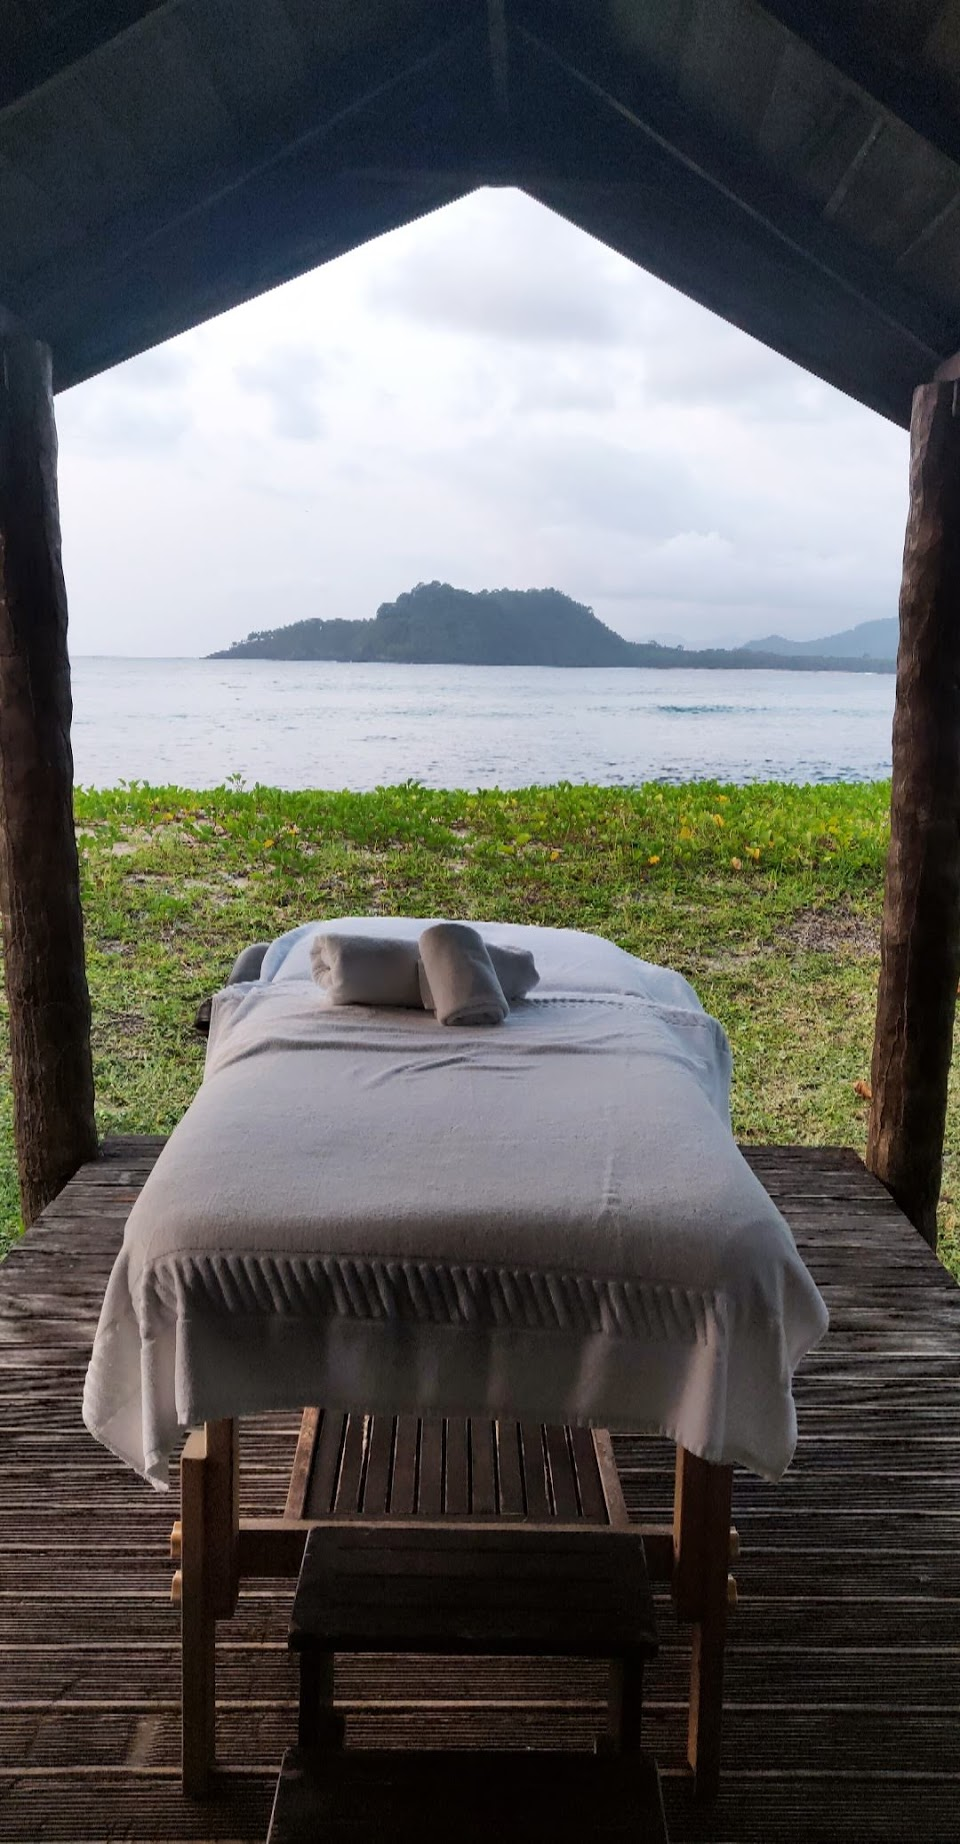 Where to stay in Sao Tome - Massage with a view - Hotel on the equator - Hidden destinations